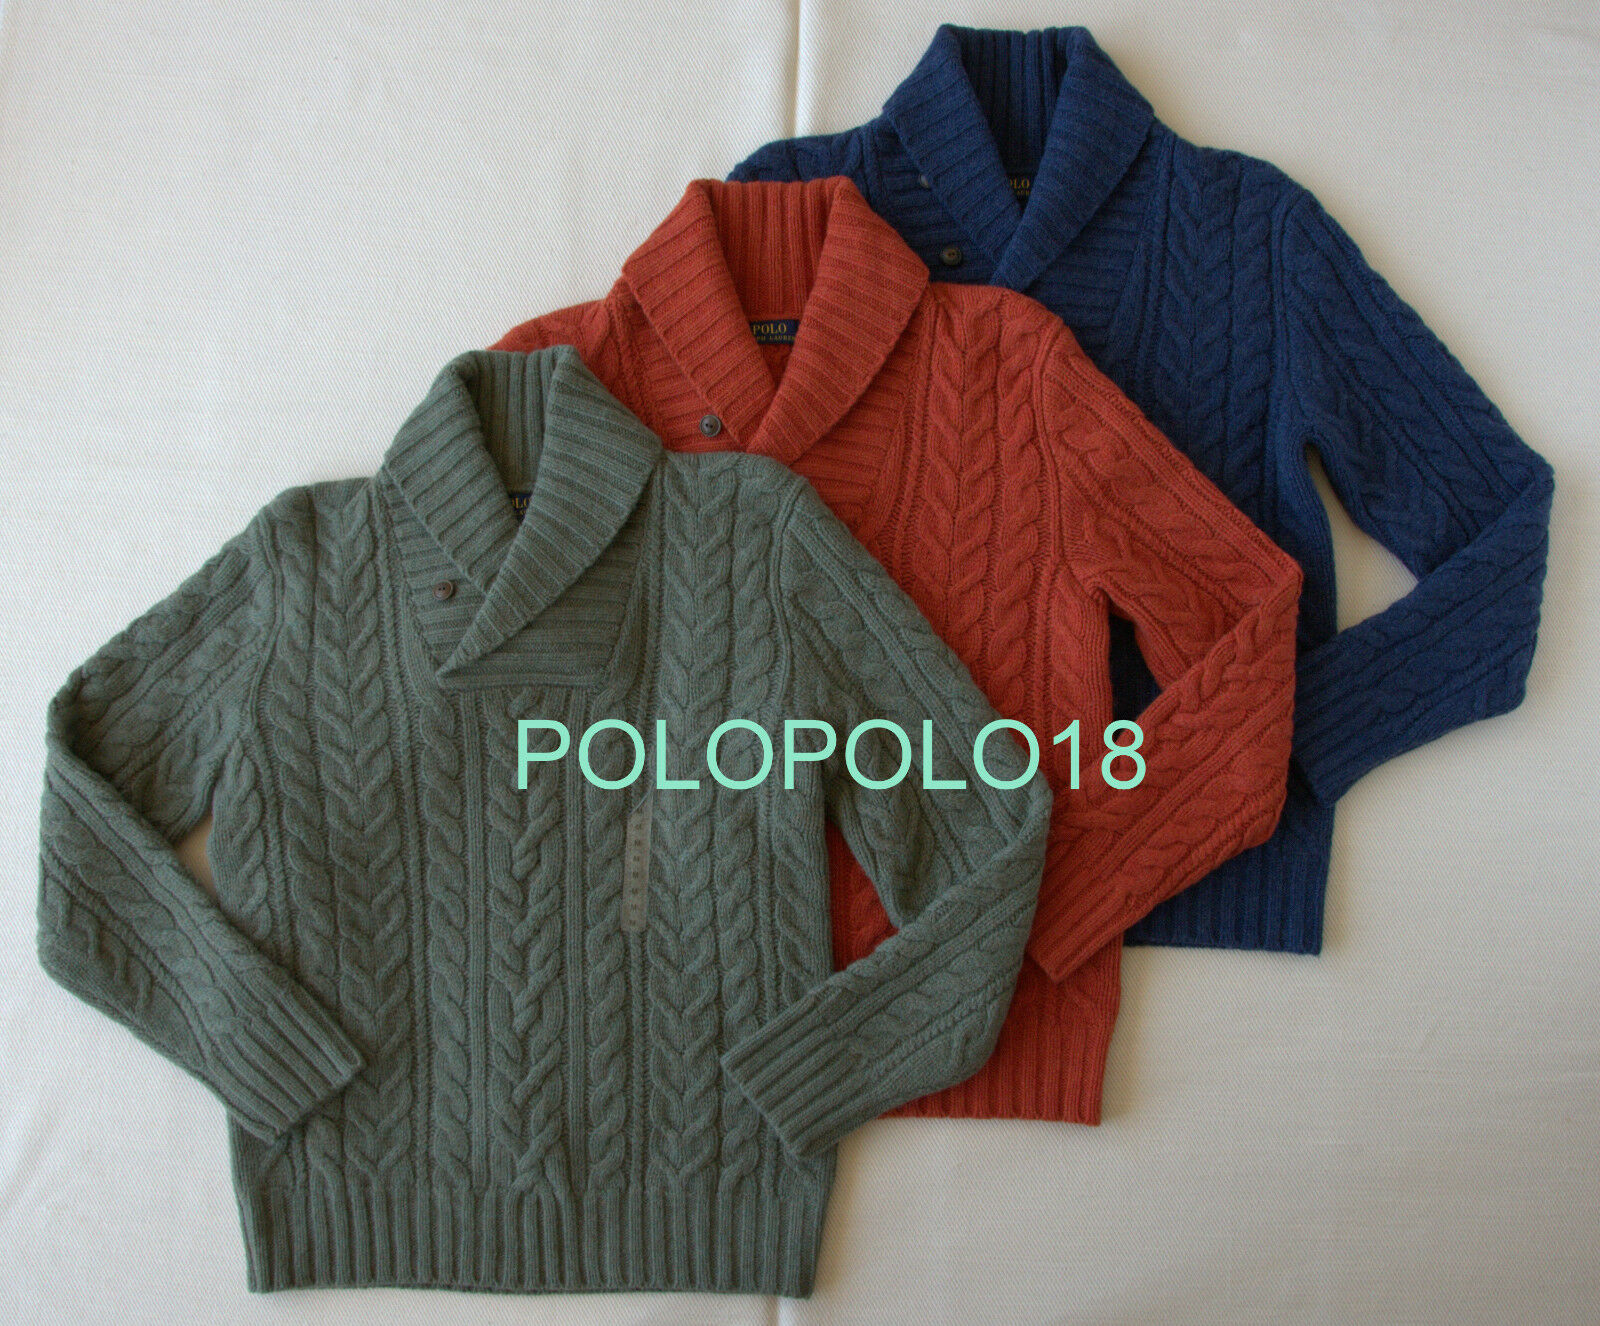 New 225 Polo Ralph Lauren Merino Angora Wool Shawl Cable Knit Sweater L